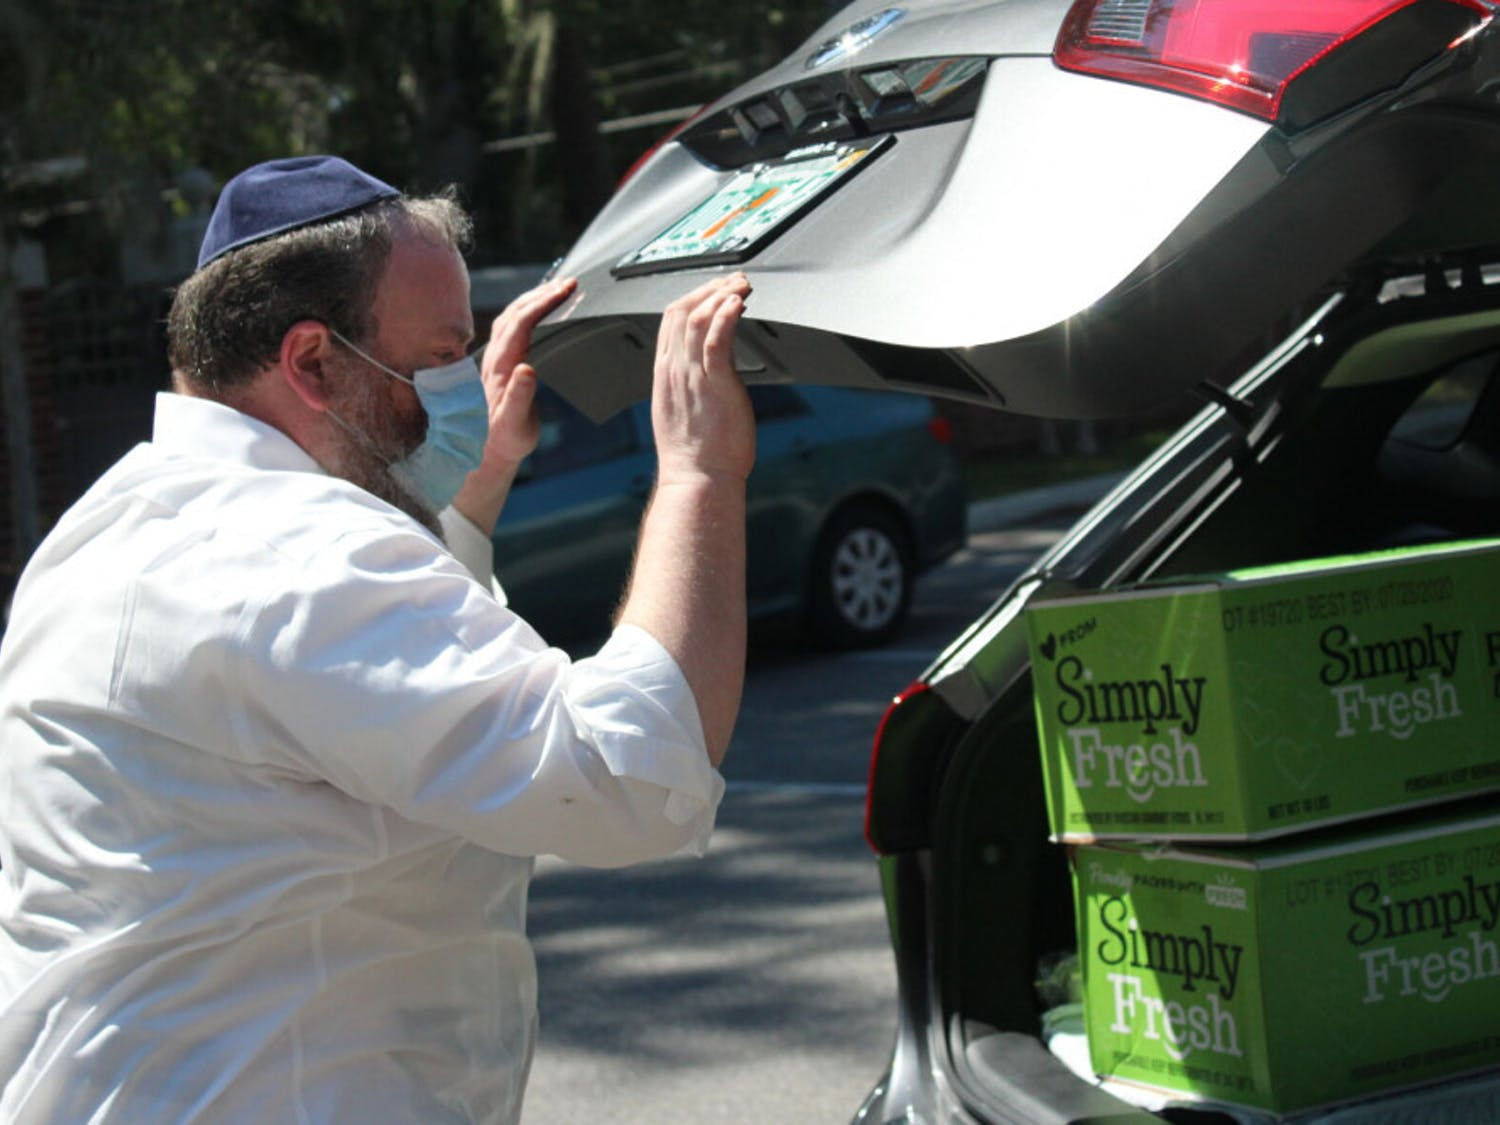 """Rabbi Berl Goldman helped load boxes of free fruits and vegetables into cars of community members. """"We need to share the spirit and energy of giving,"""" he said. """"People need help. Serving during happy times is exciting and positive but serving during a pandemic is what we are called to do. People need hope."""""""